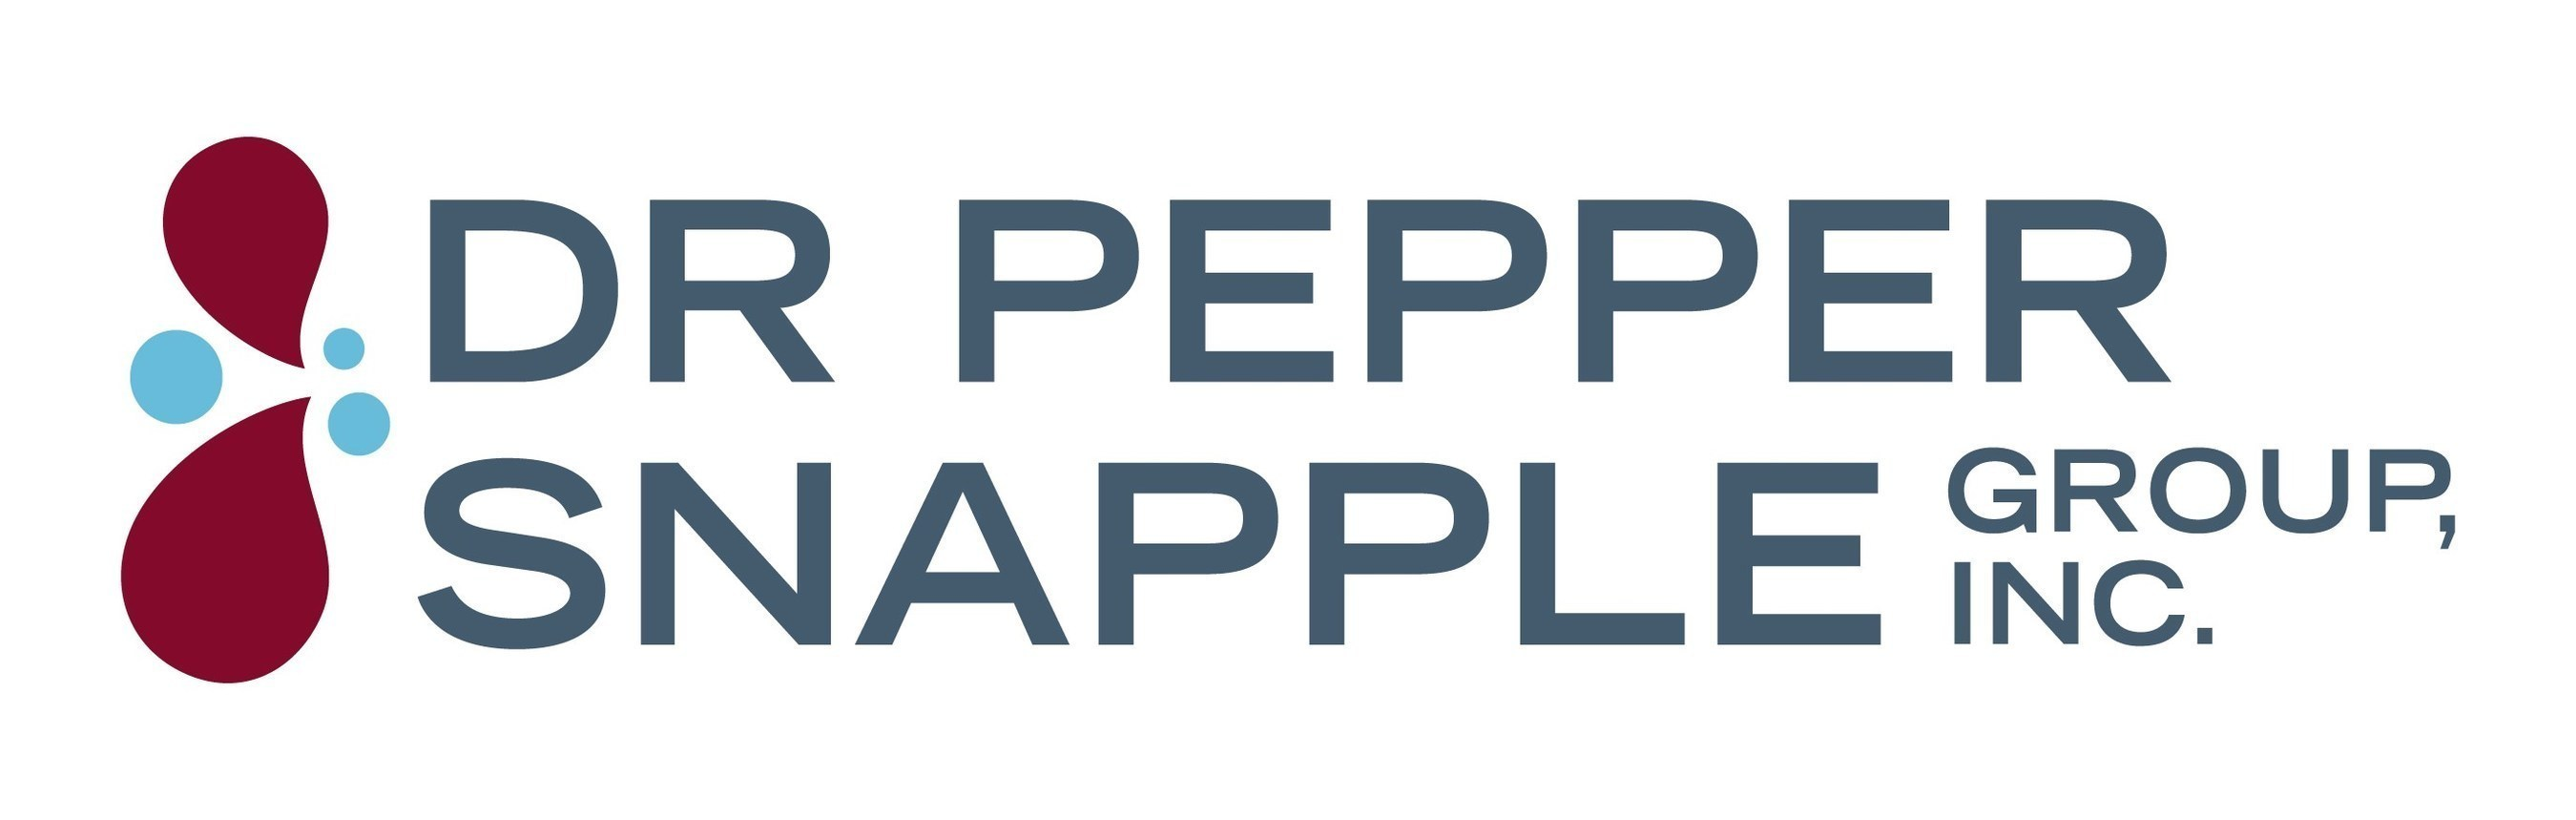 dr. pepper snapple group, inc. essay The dr pepper snapple group scholarship is open to full-time  dr pepper, inc is pleased to announce its scholarship  essay scholarship contest can.